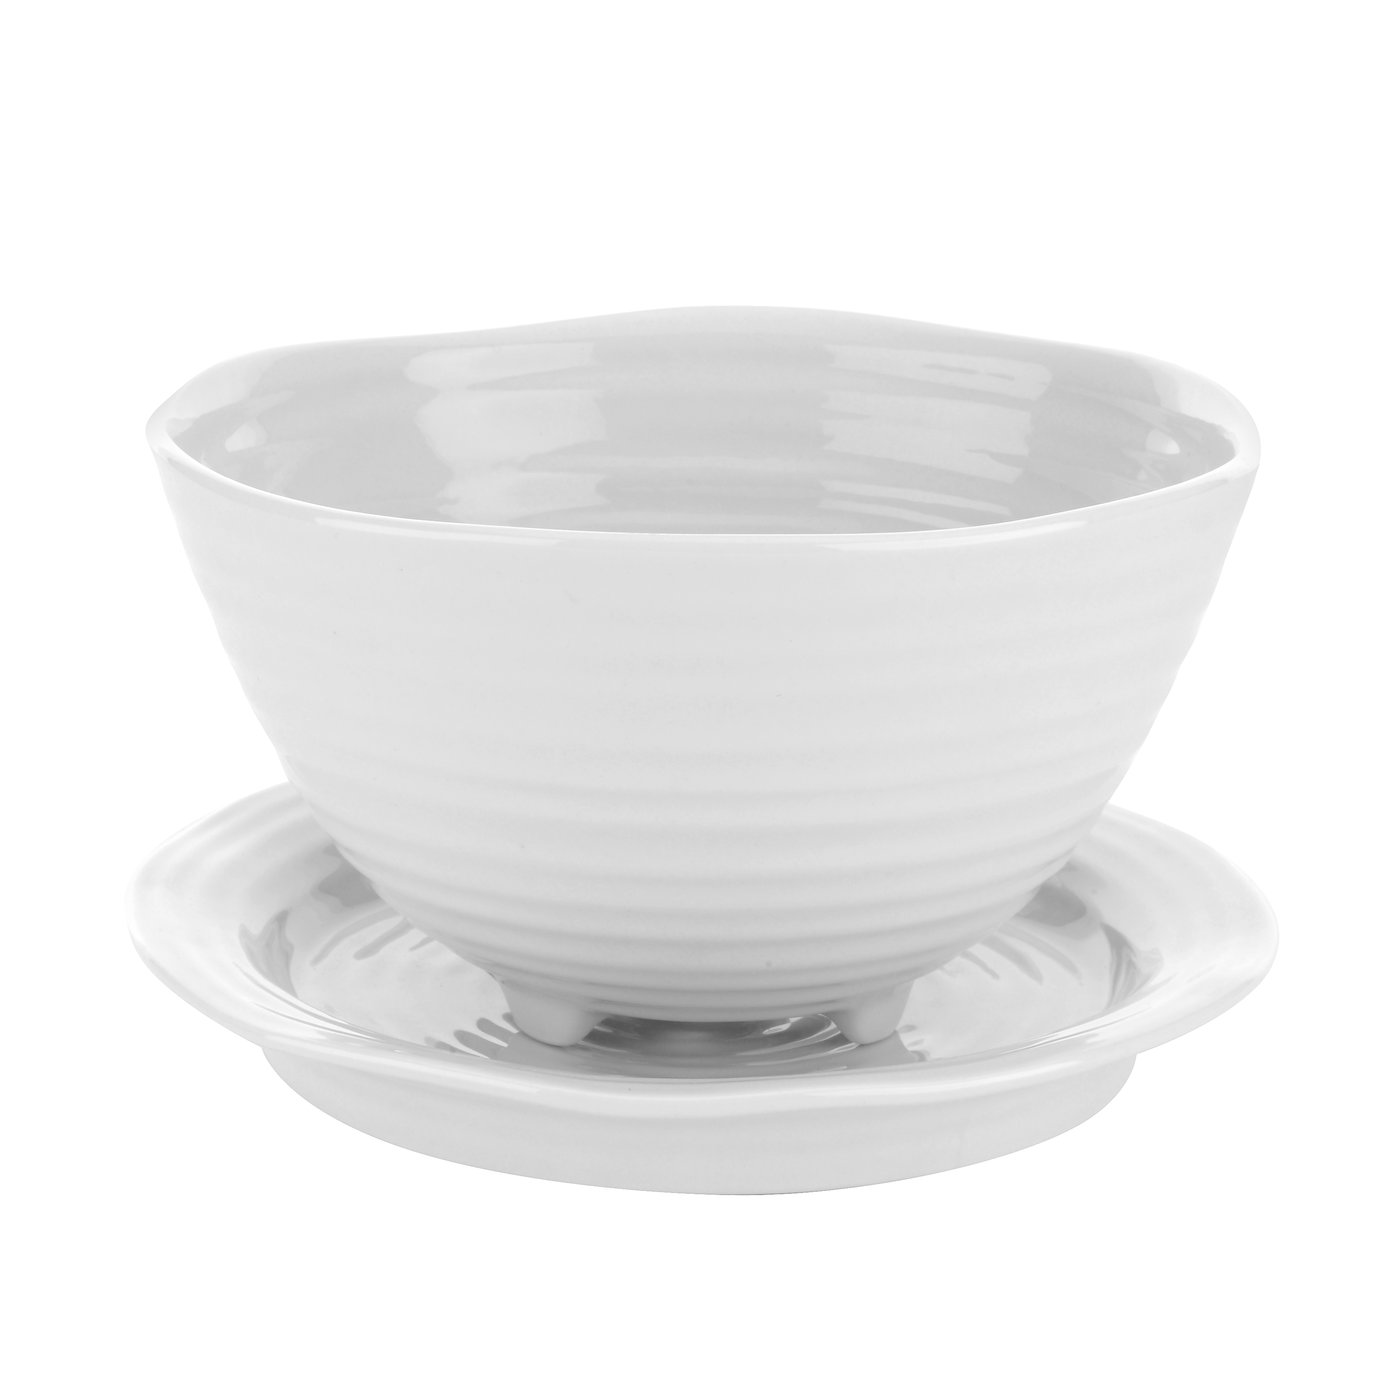 포트메리온 '소피 콘란' 베리 볼 앤 스탠드 Sophie Conran for Portmeirion White Berry Bowl and Stand